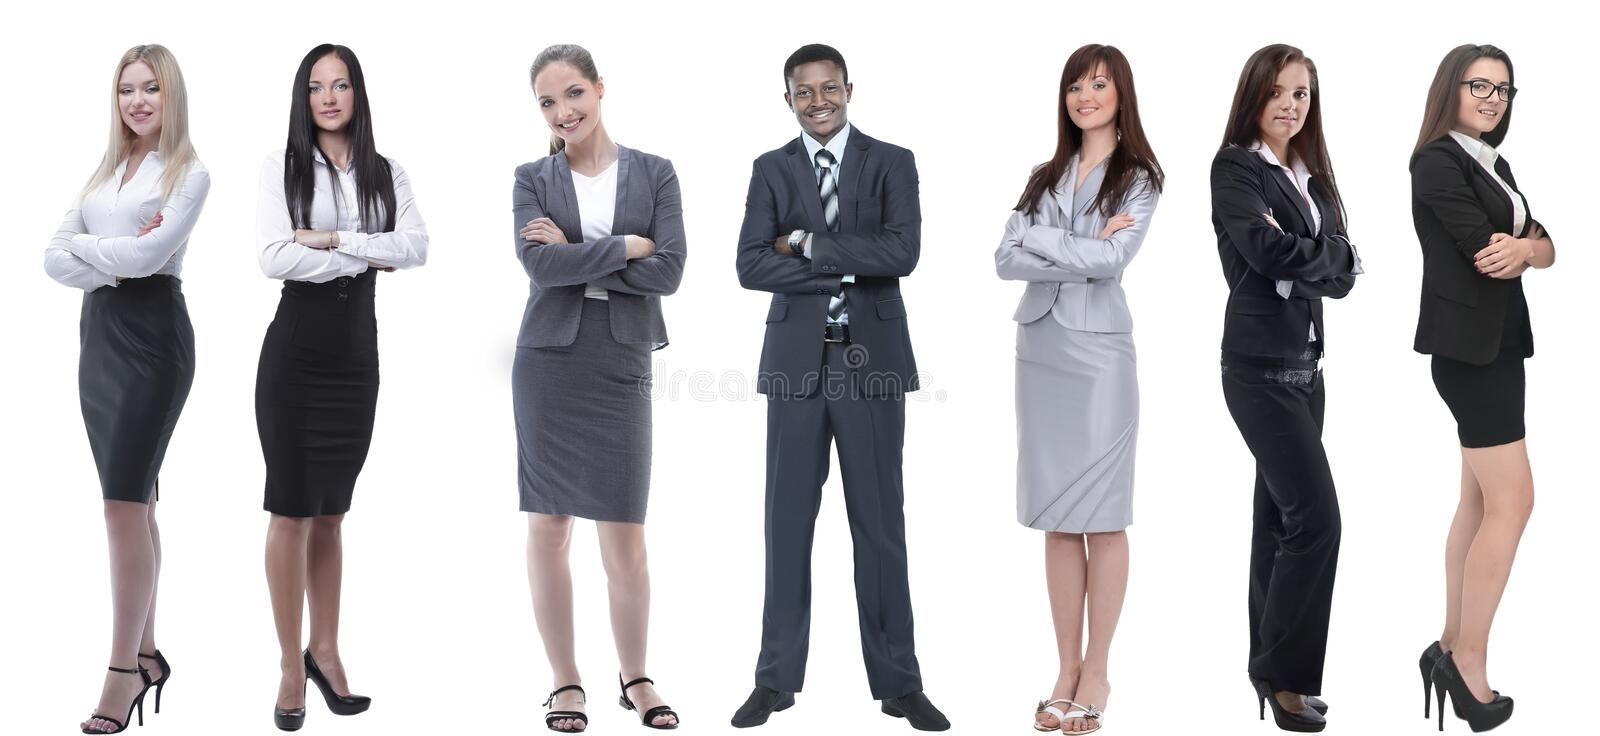 Group of successful business people standing in a row. stock photo